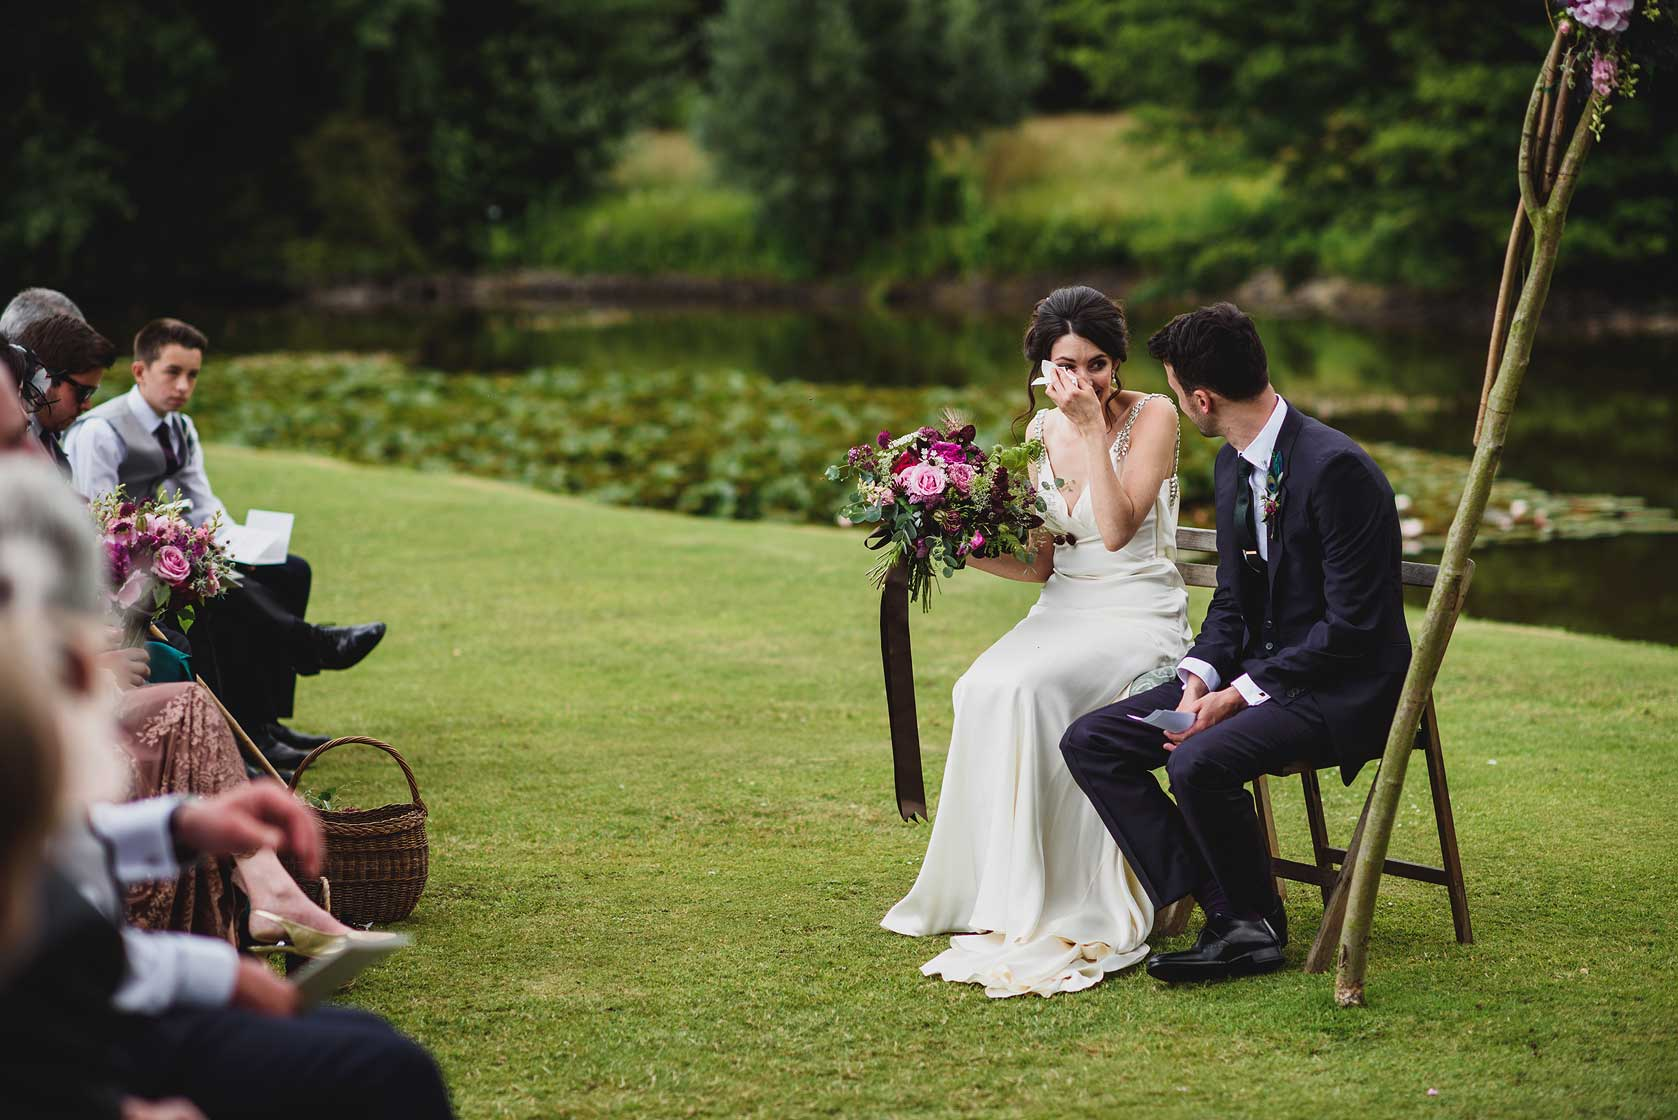 Reportage Wedding Photography at Narborough Hall Gardens